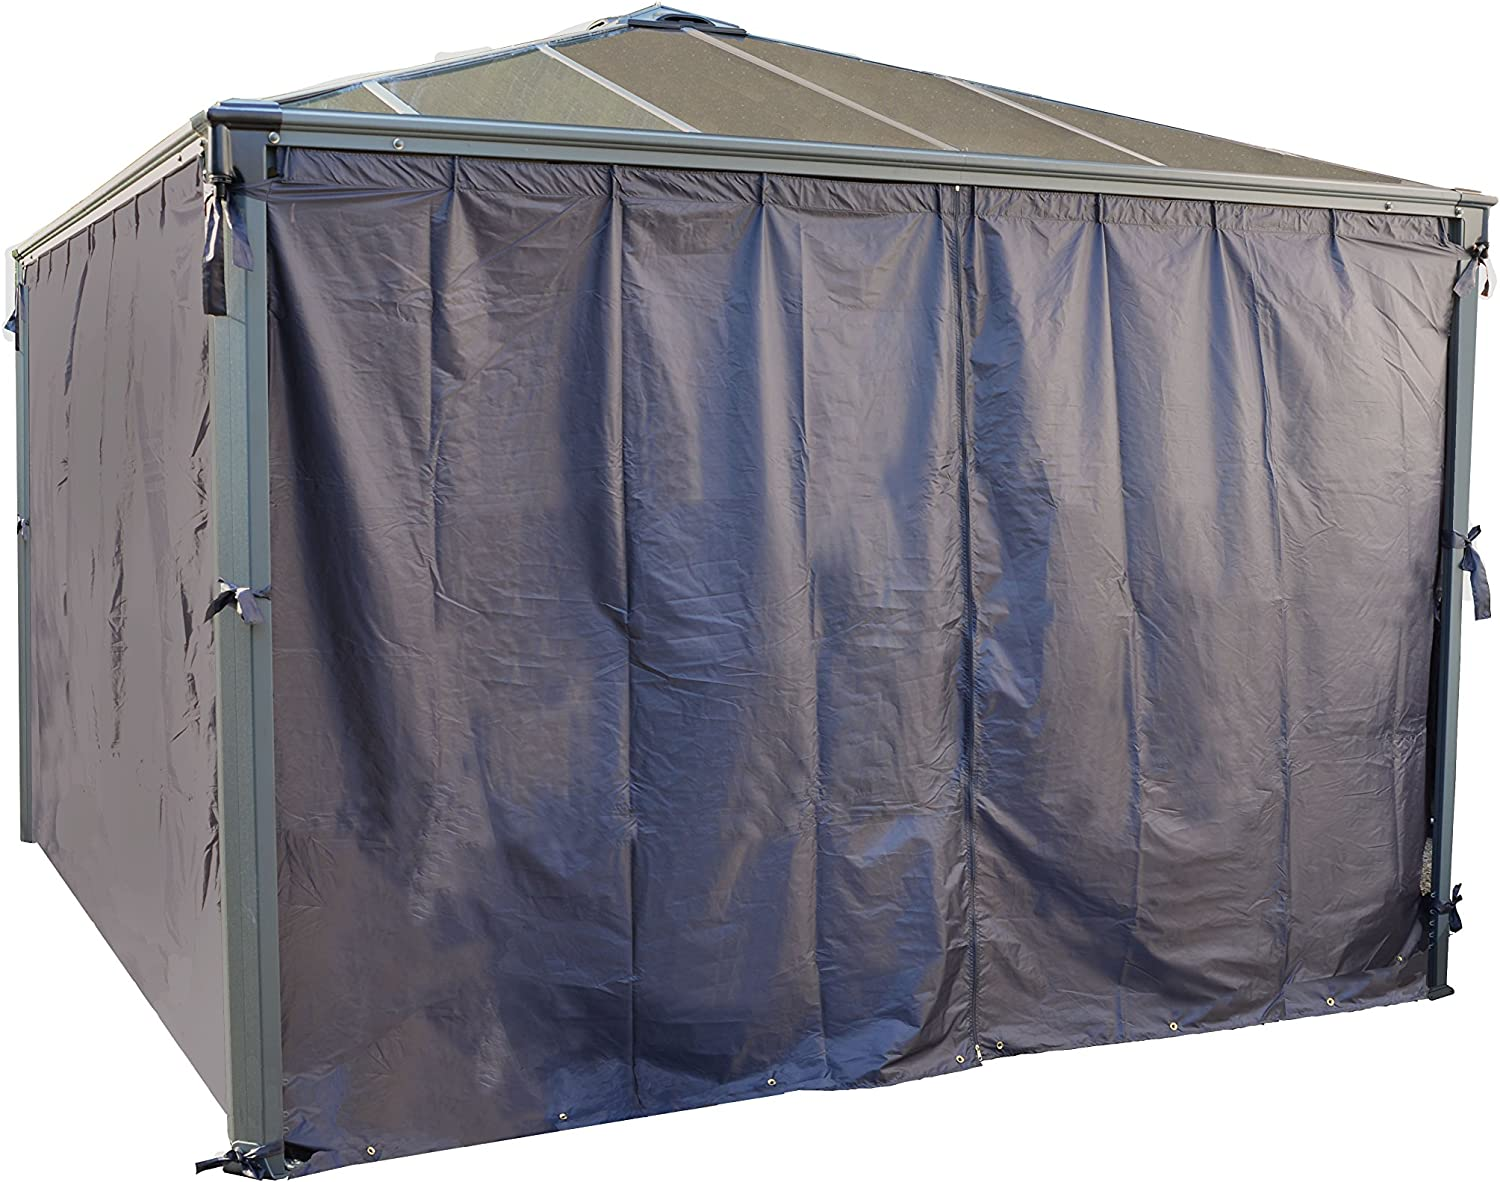 Palermo 4300 Gazebo Max 84% Today's only OFF Curtain 4 piece - set